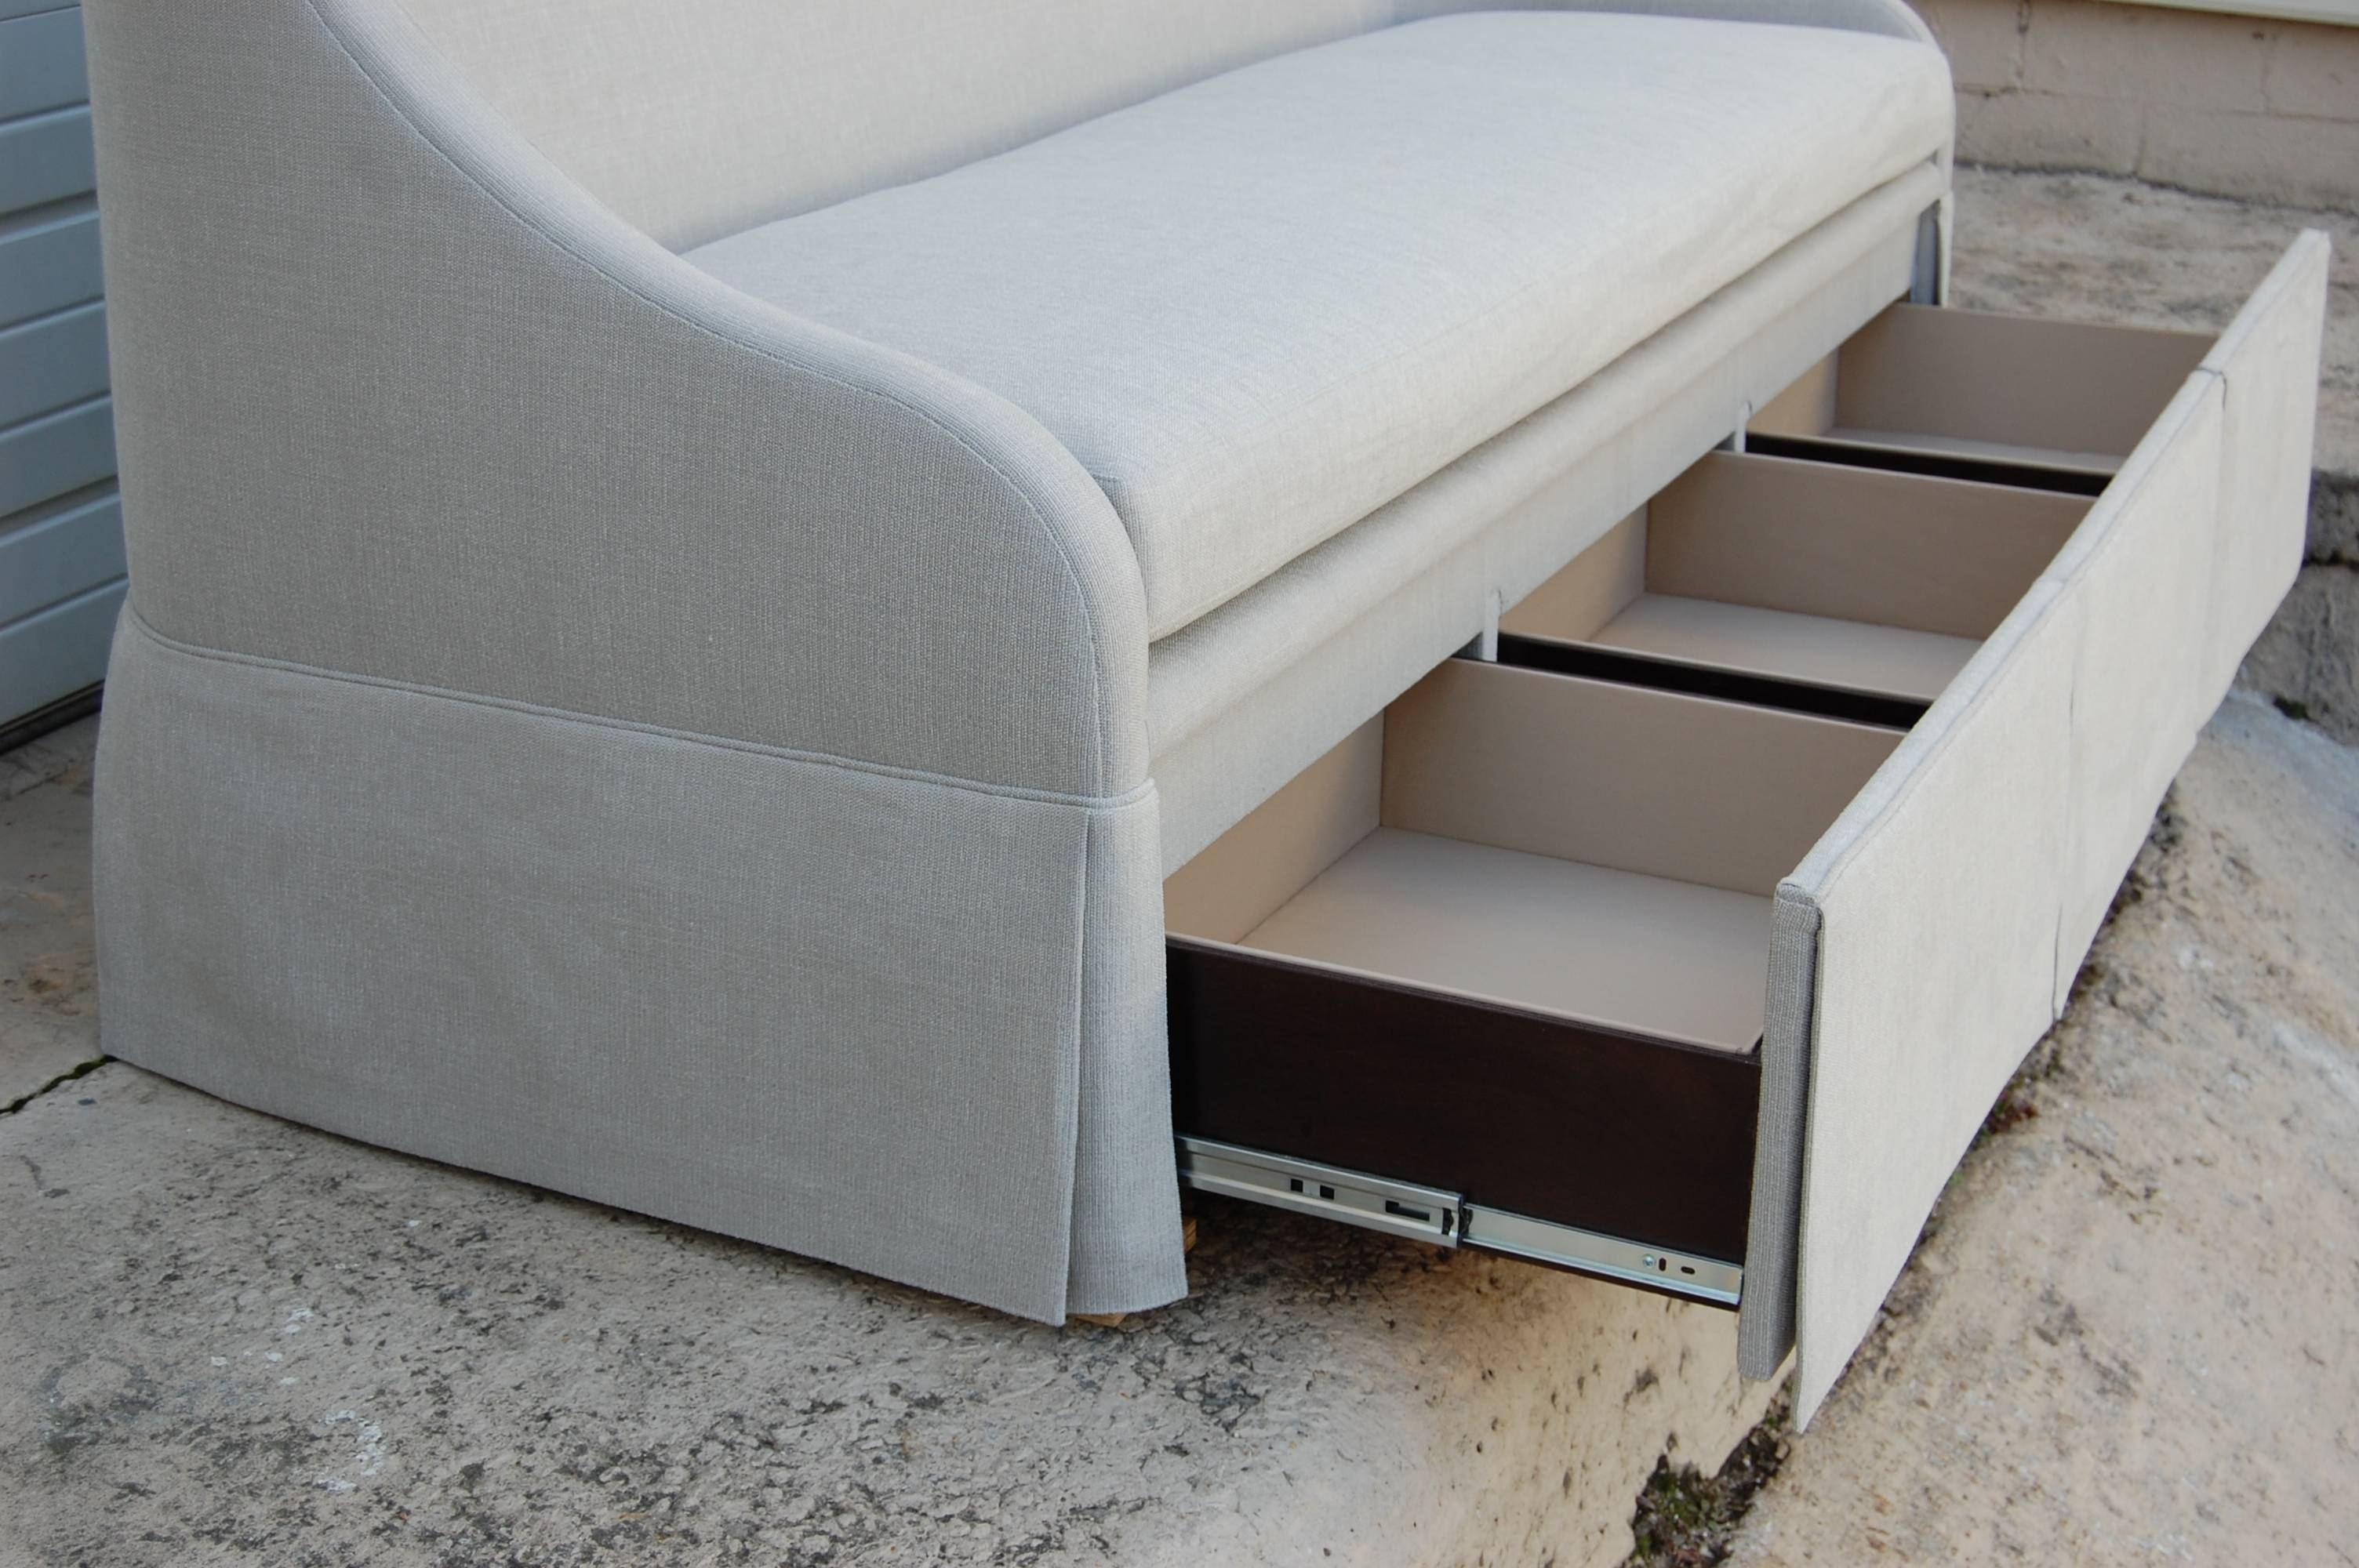 Banquette Furniture With Storage Ideas – Banquette Design with regard to Banquette Sofas (Image 5 of 15)